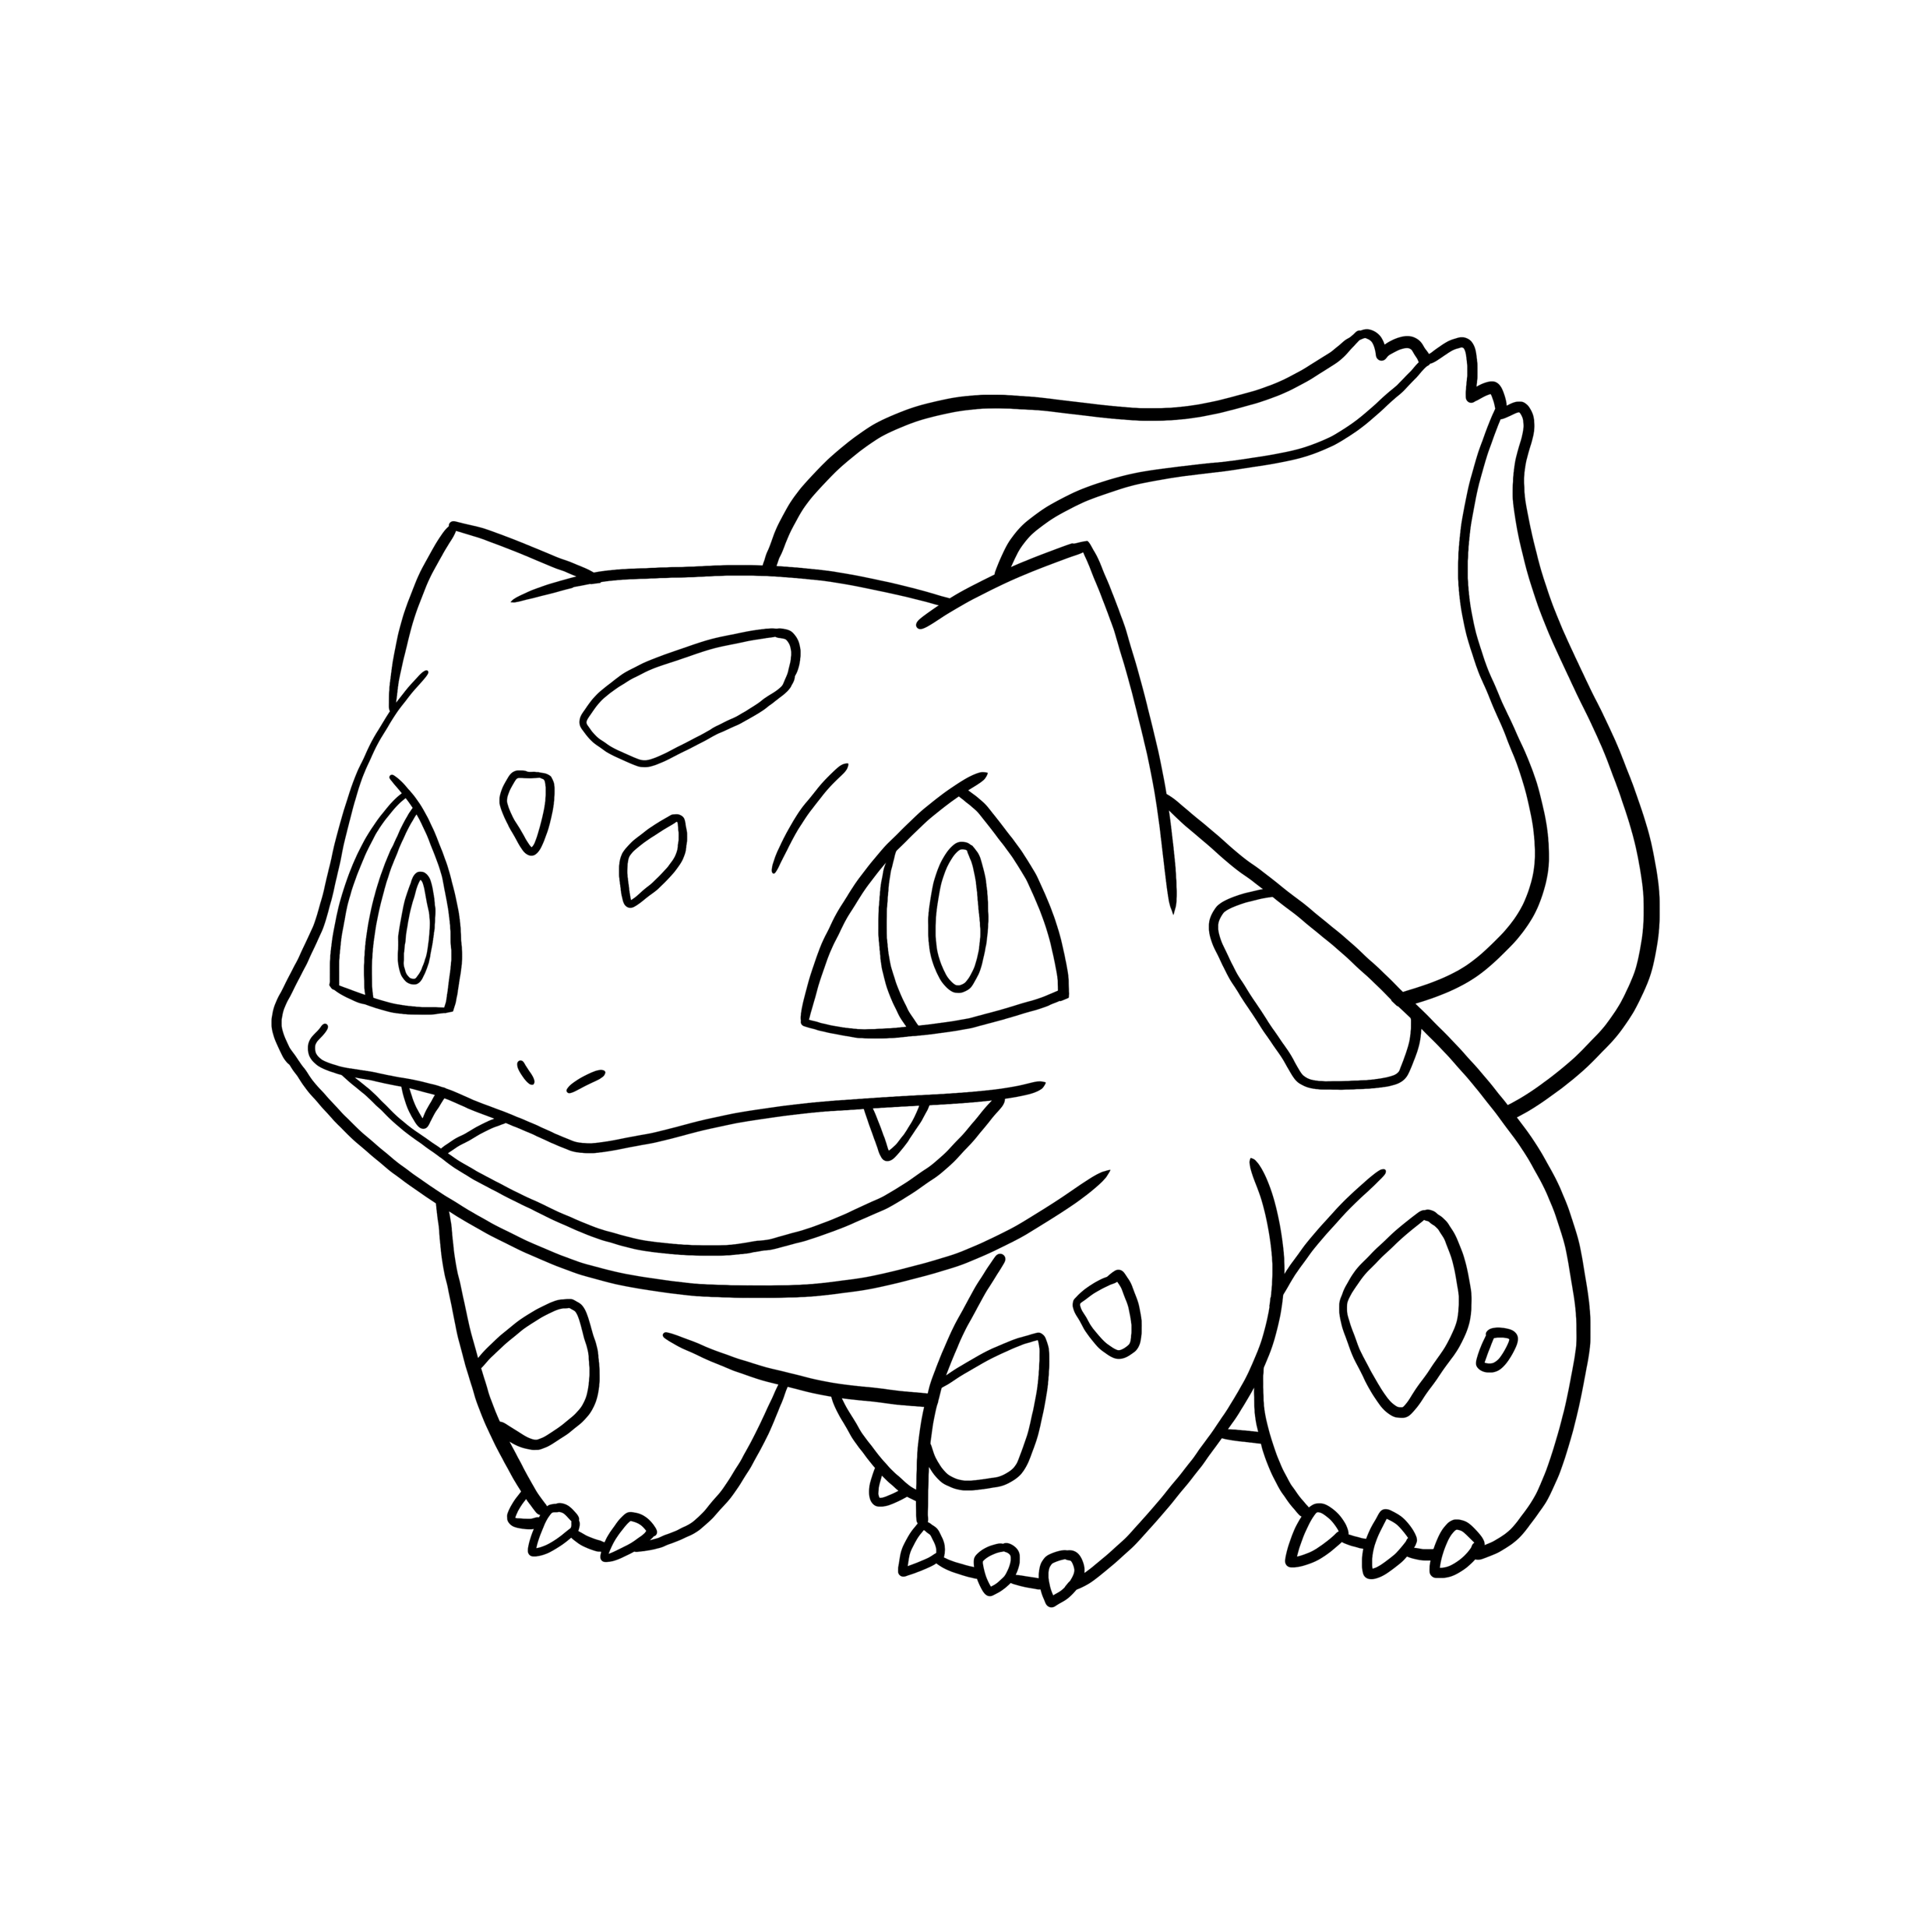 colouring pages of pokemon black and white image result for charmander images black and white pokemon and colouring black white pages of